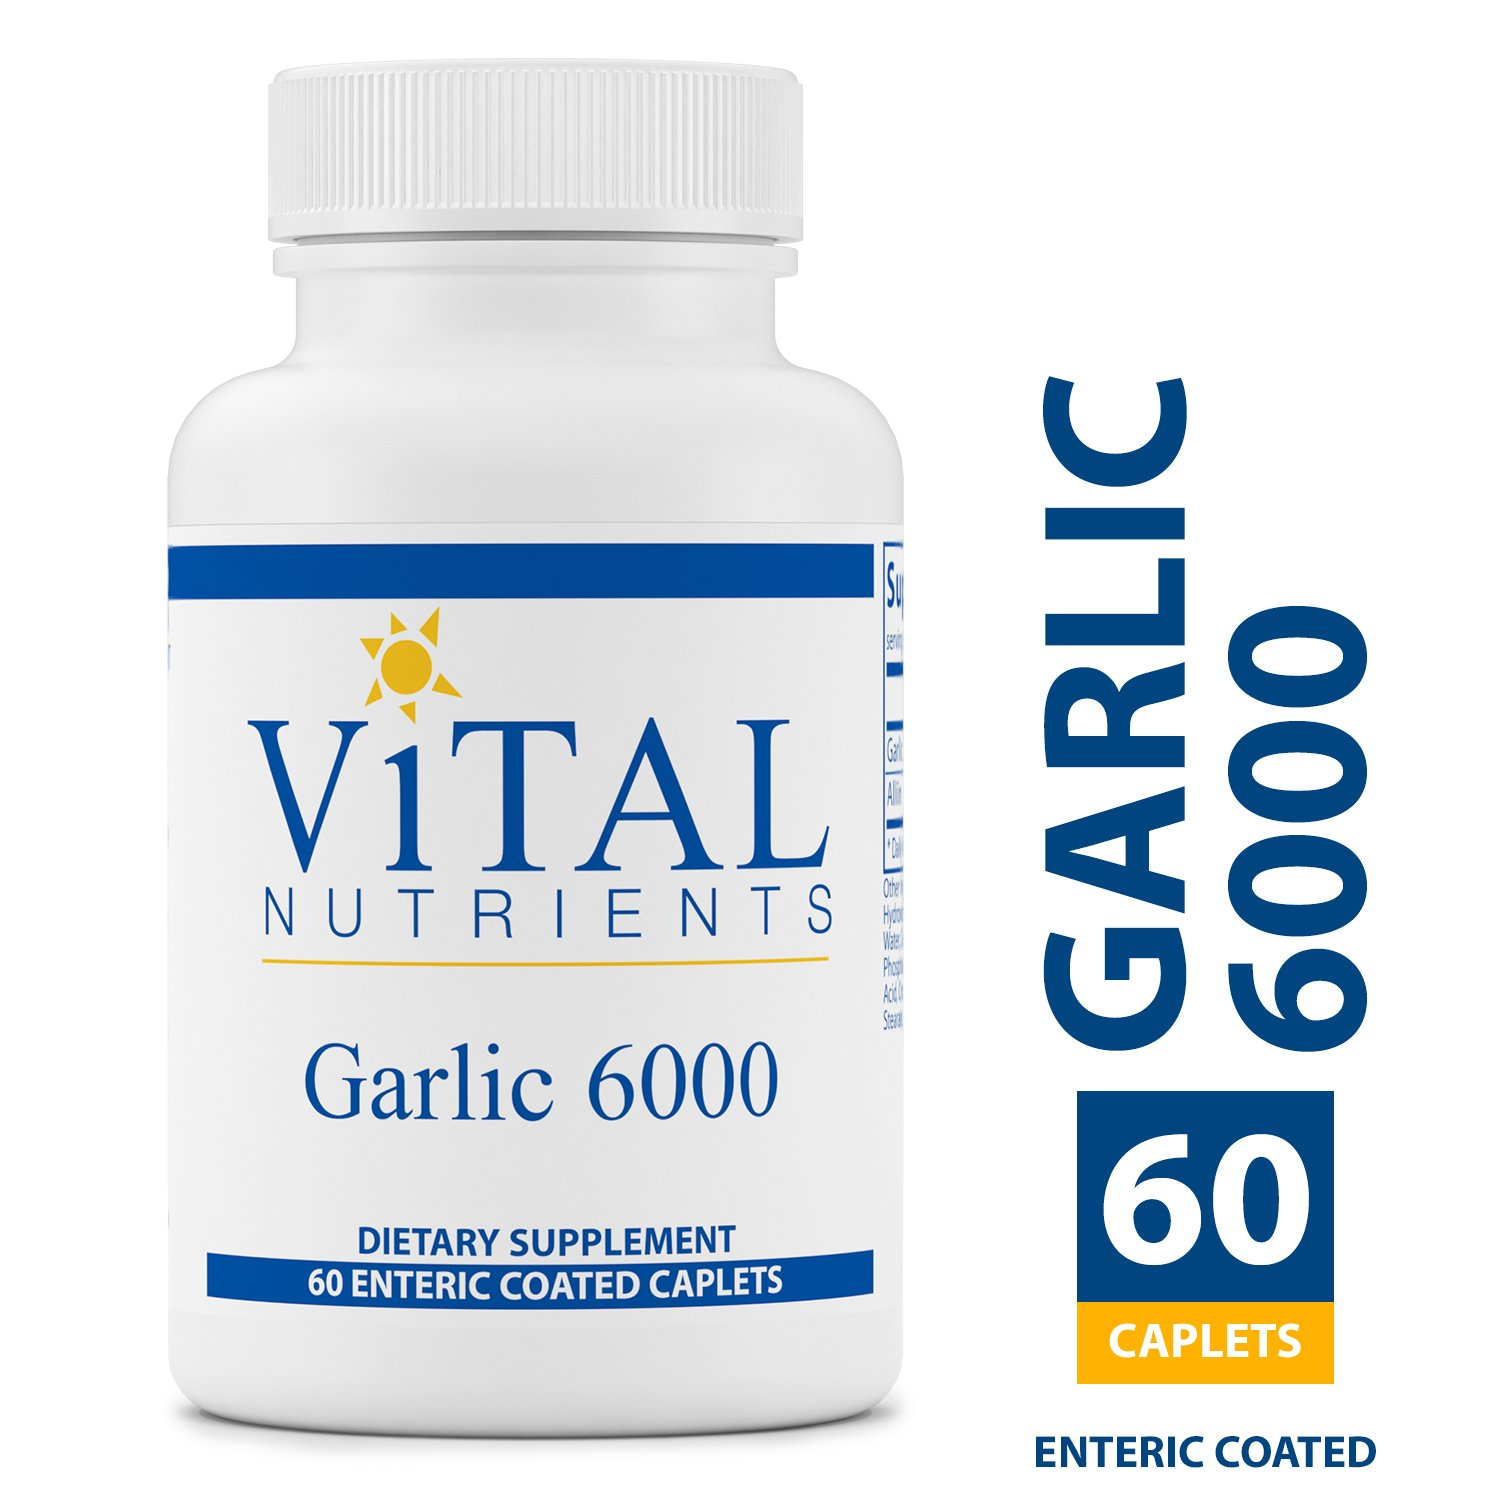 Vital Nutrients - Garlic 6000 - Cardiovascular, Immune, and Cholesterol Level Support - 60 Enteric Coated Capsules per Bottle